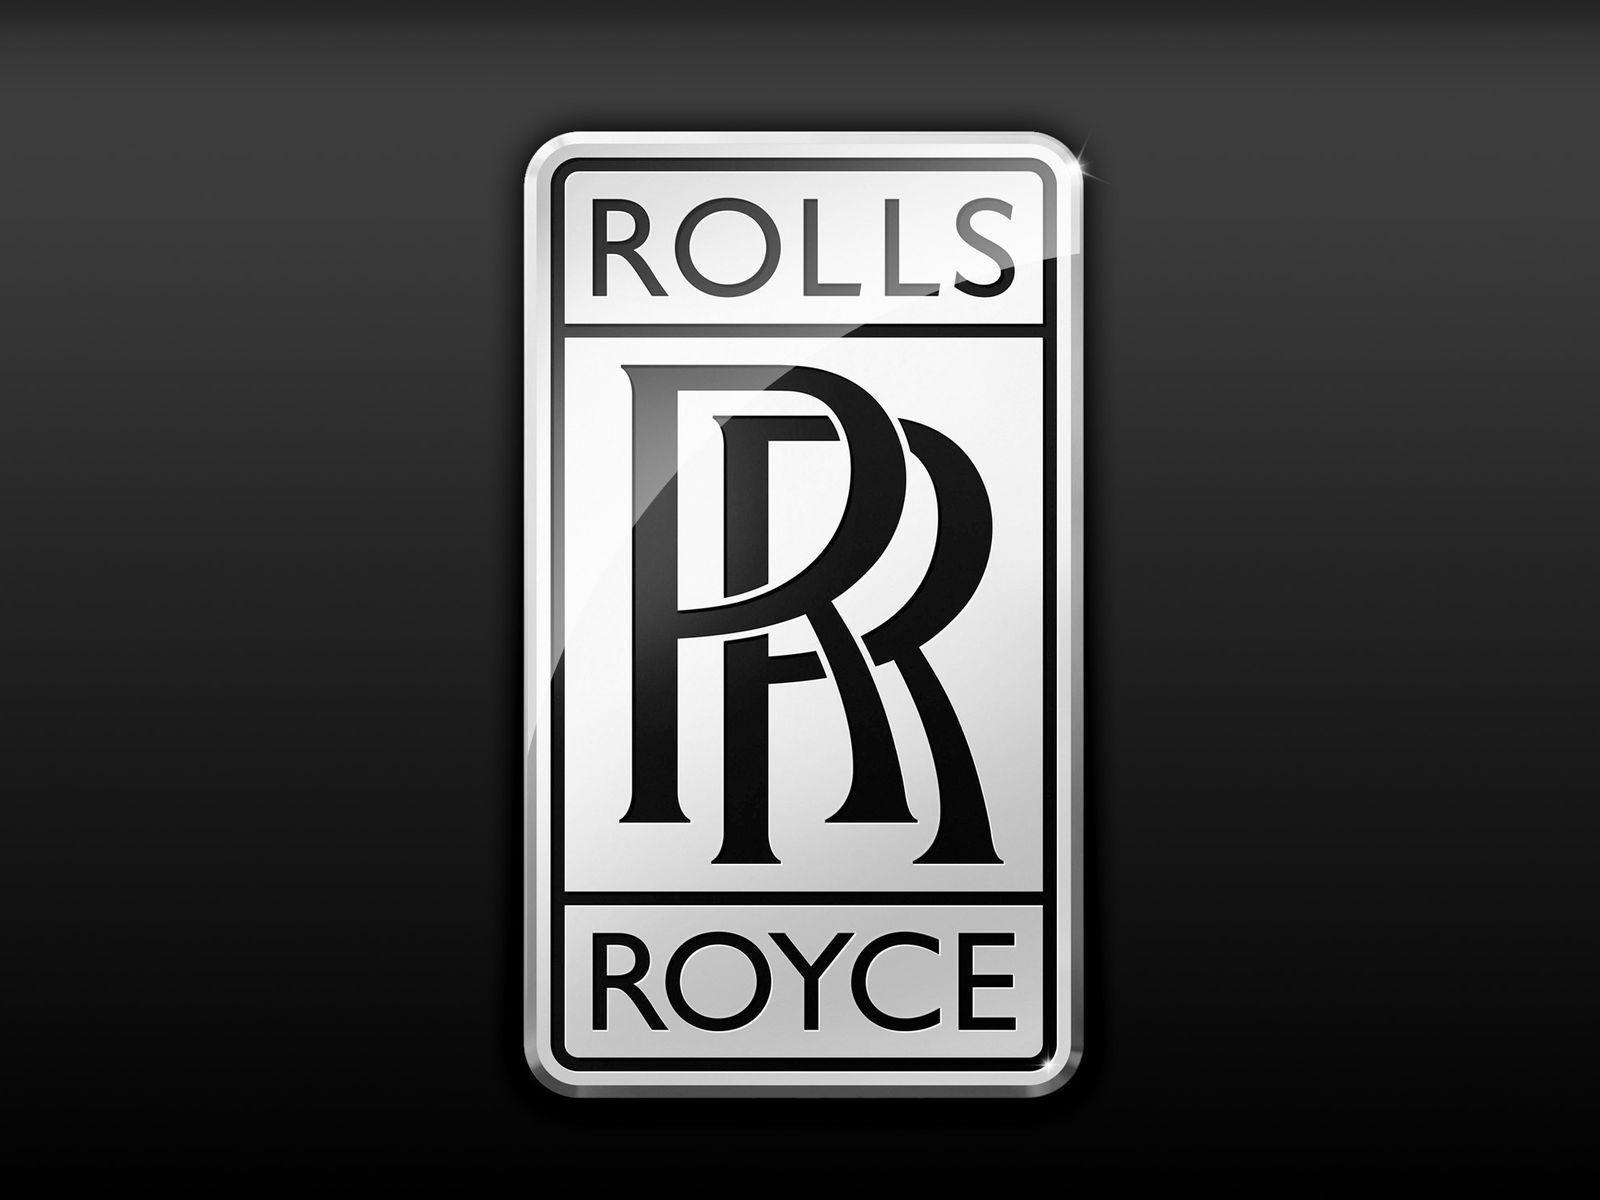 Top Rolls Royce HD Wallpapers – Top Photos for PC & Mac, Laptop